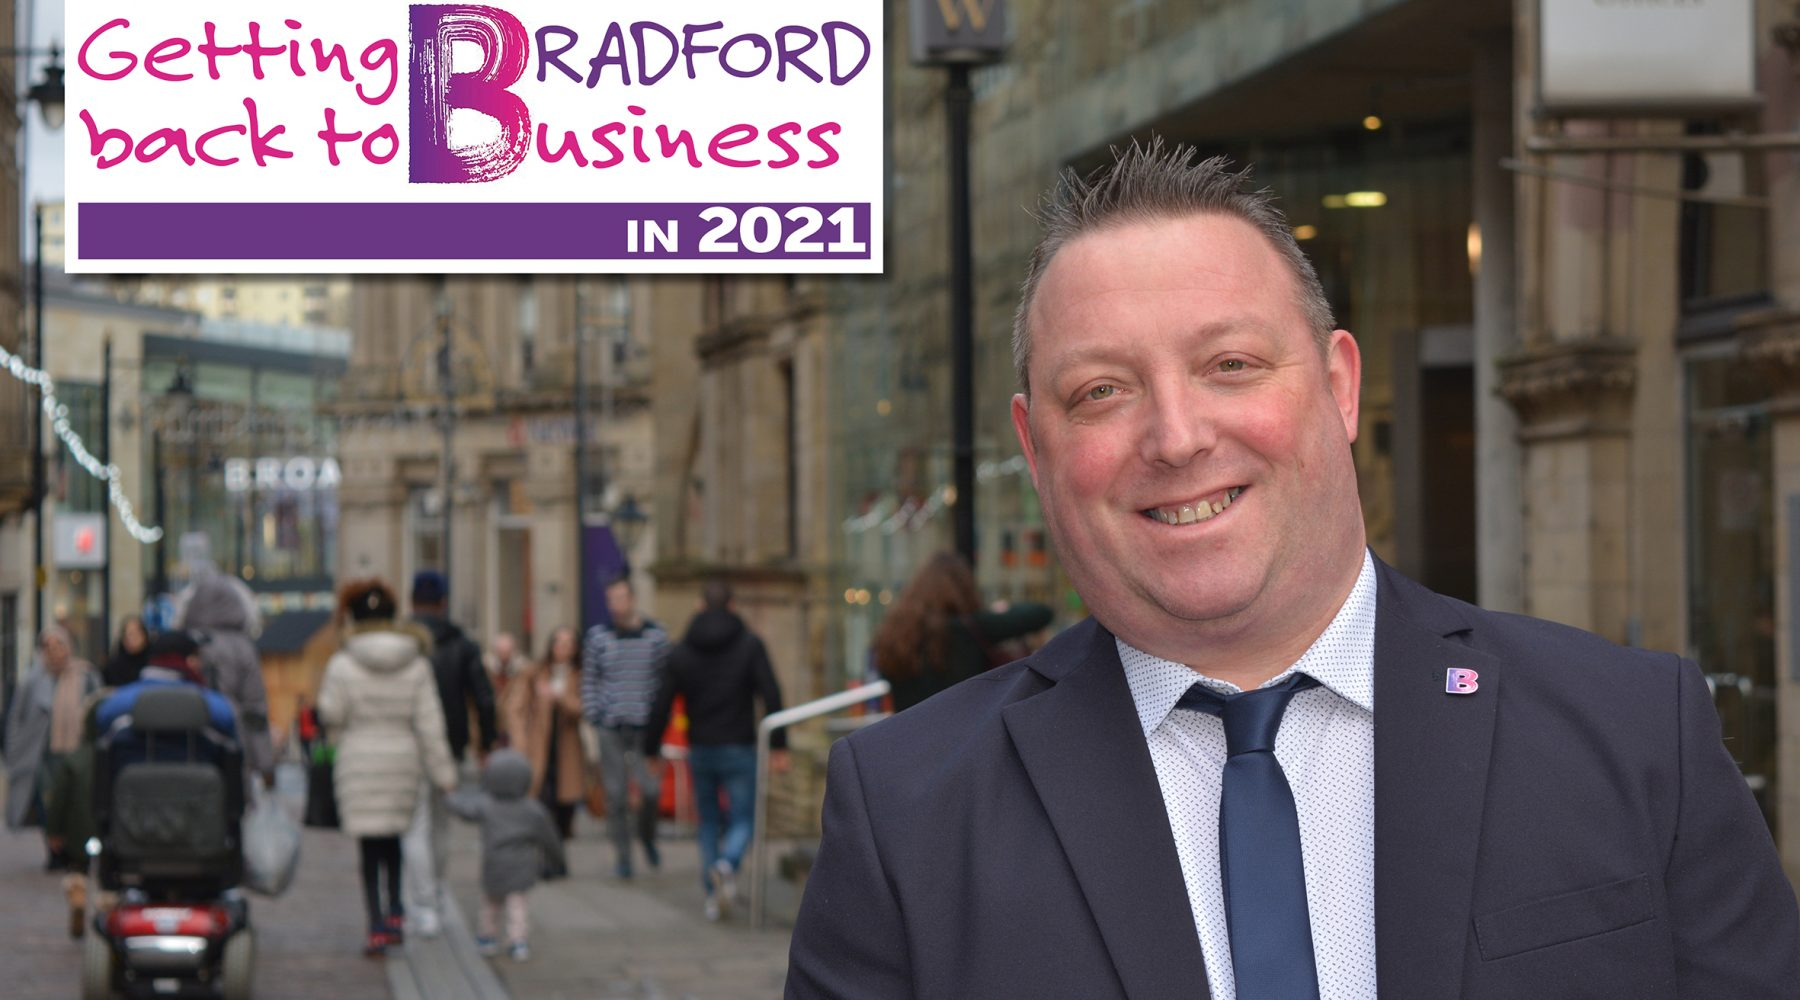 New 'Getting Bradford back to Business' campaign launched…